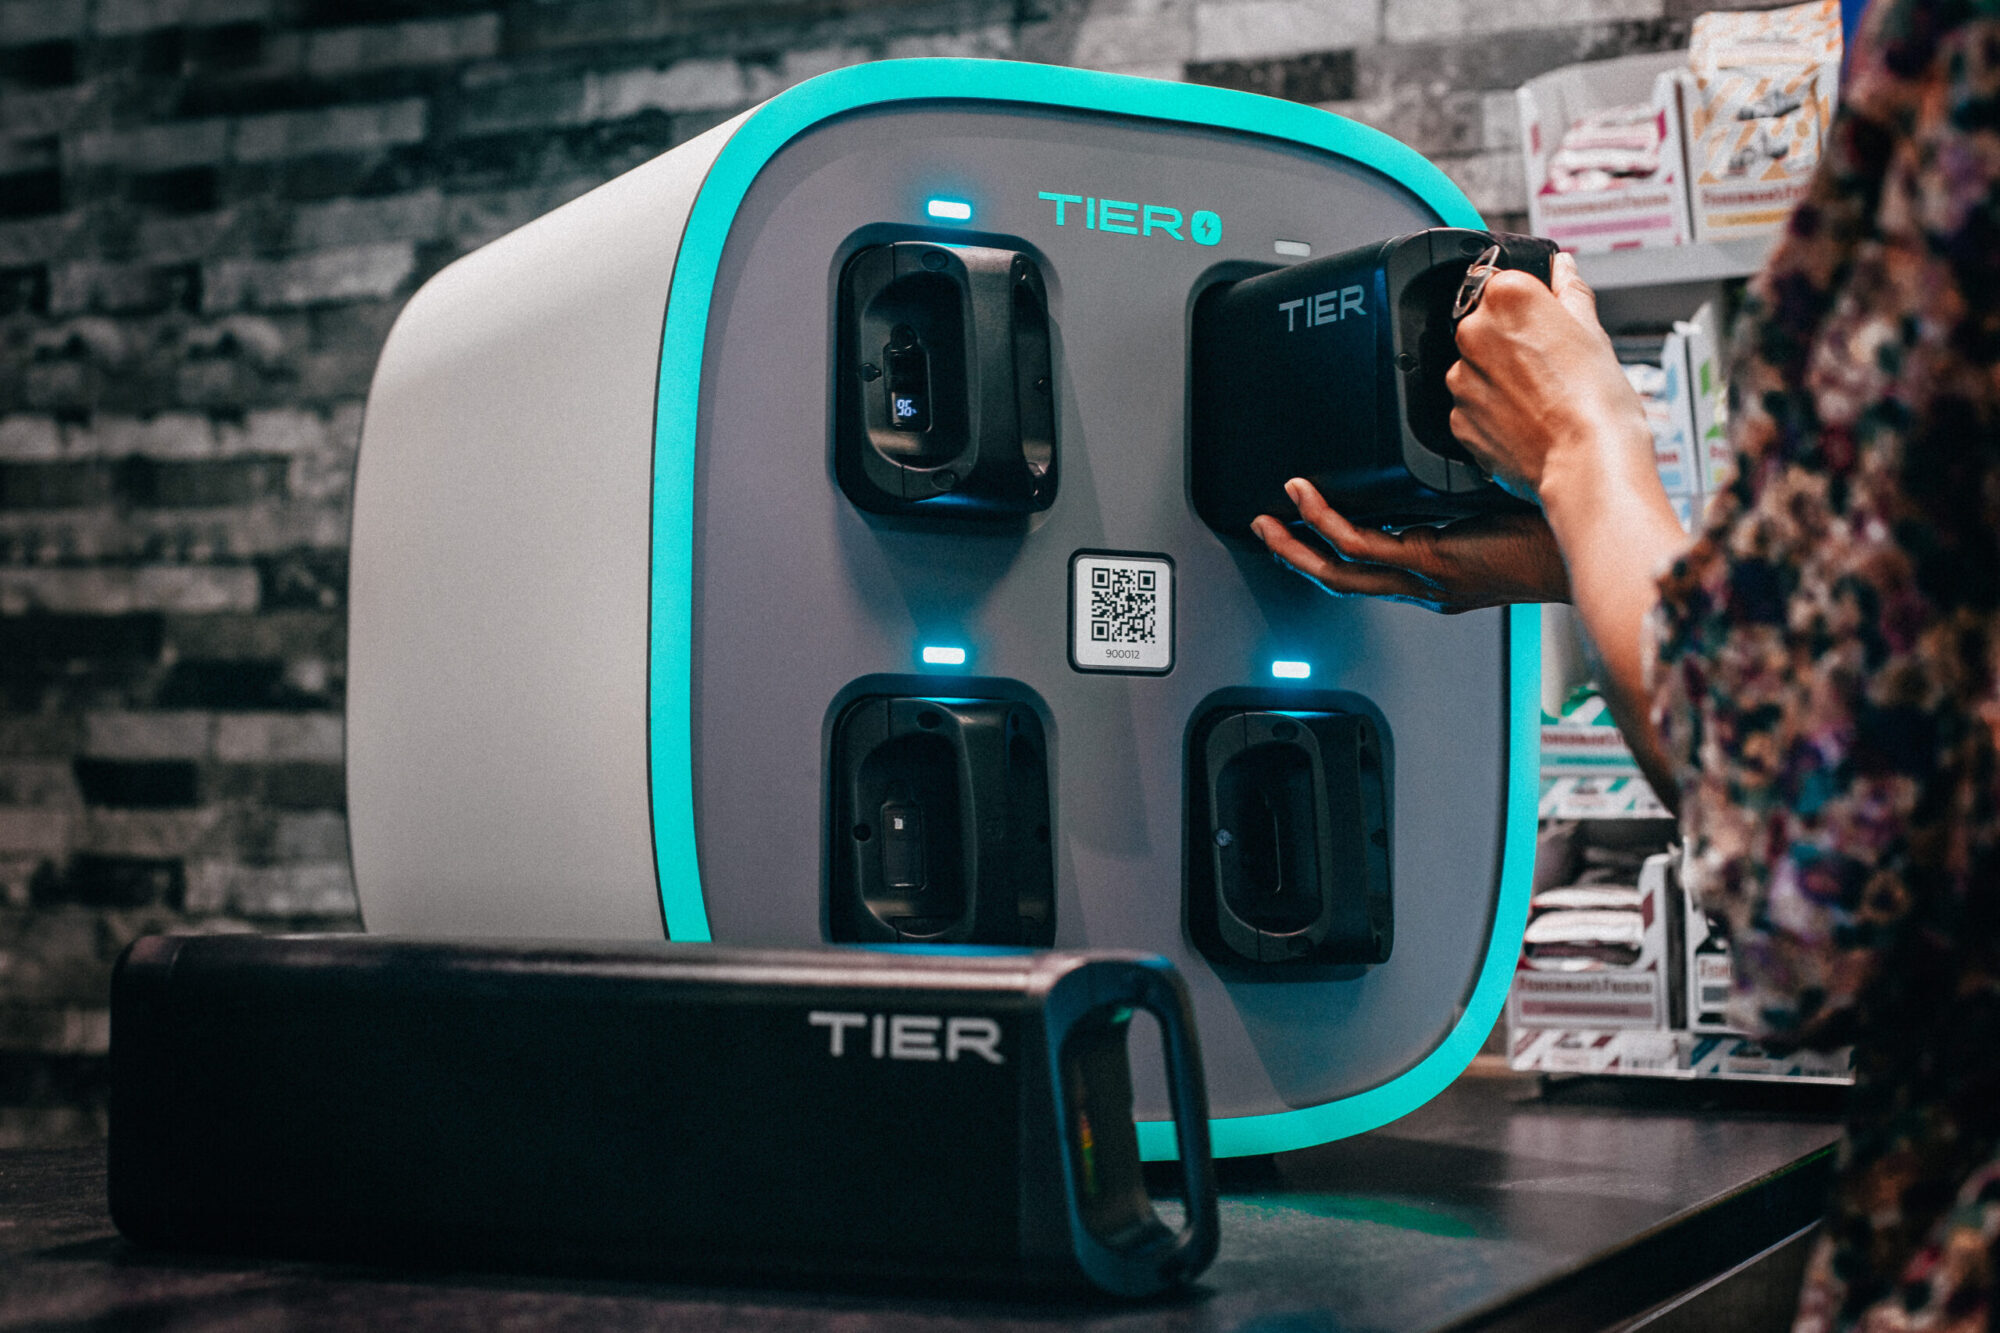 Tier wants riders to swap e-scooter batteries – and it makes perfect sense